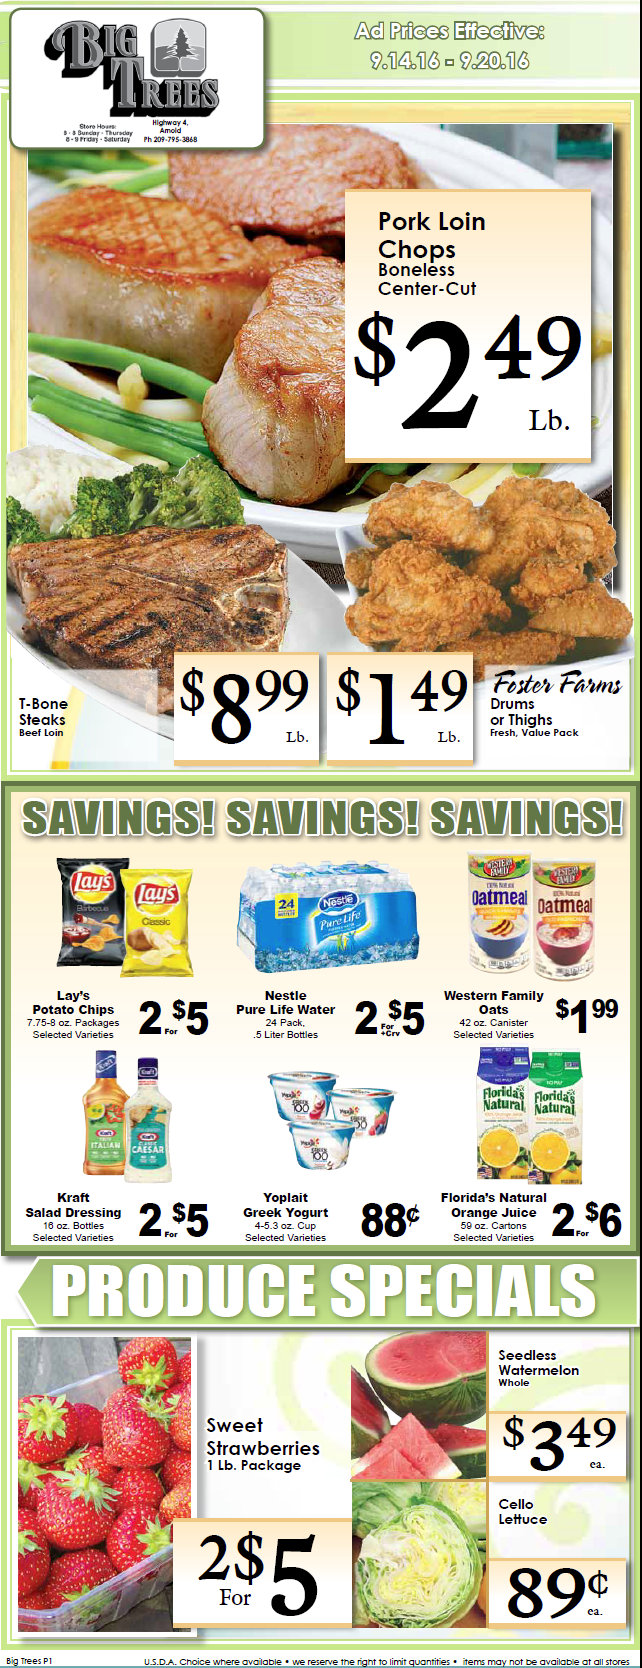 Big Trees Market Weekly Specials & Grocery Ads Through September 20th